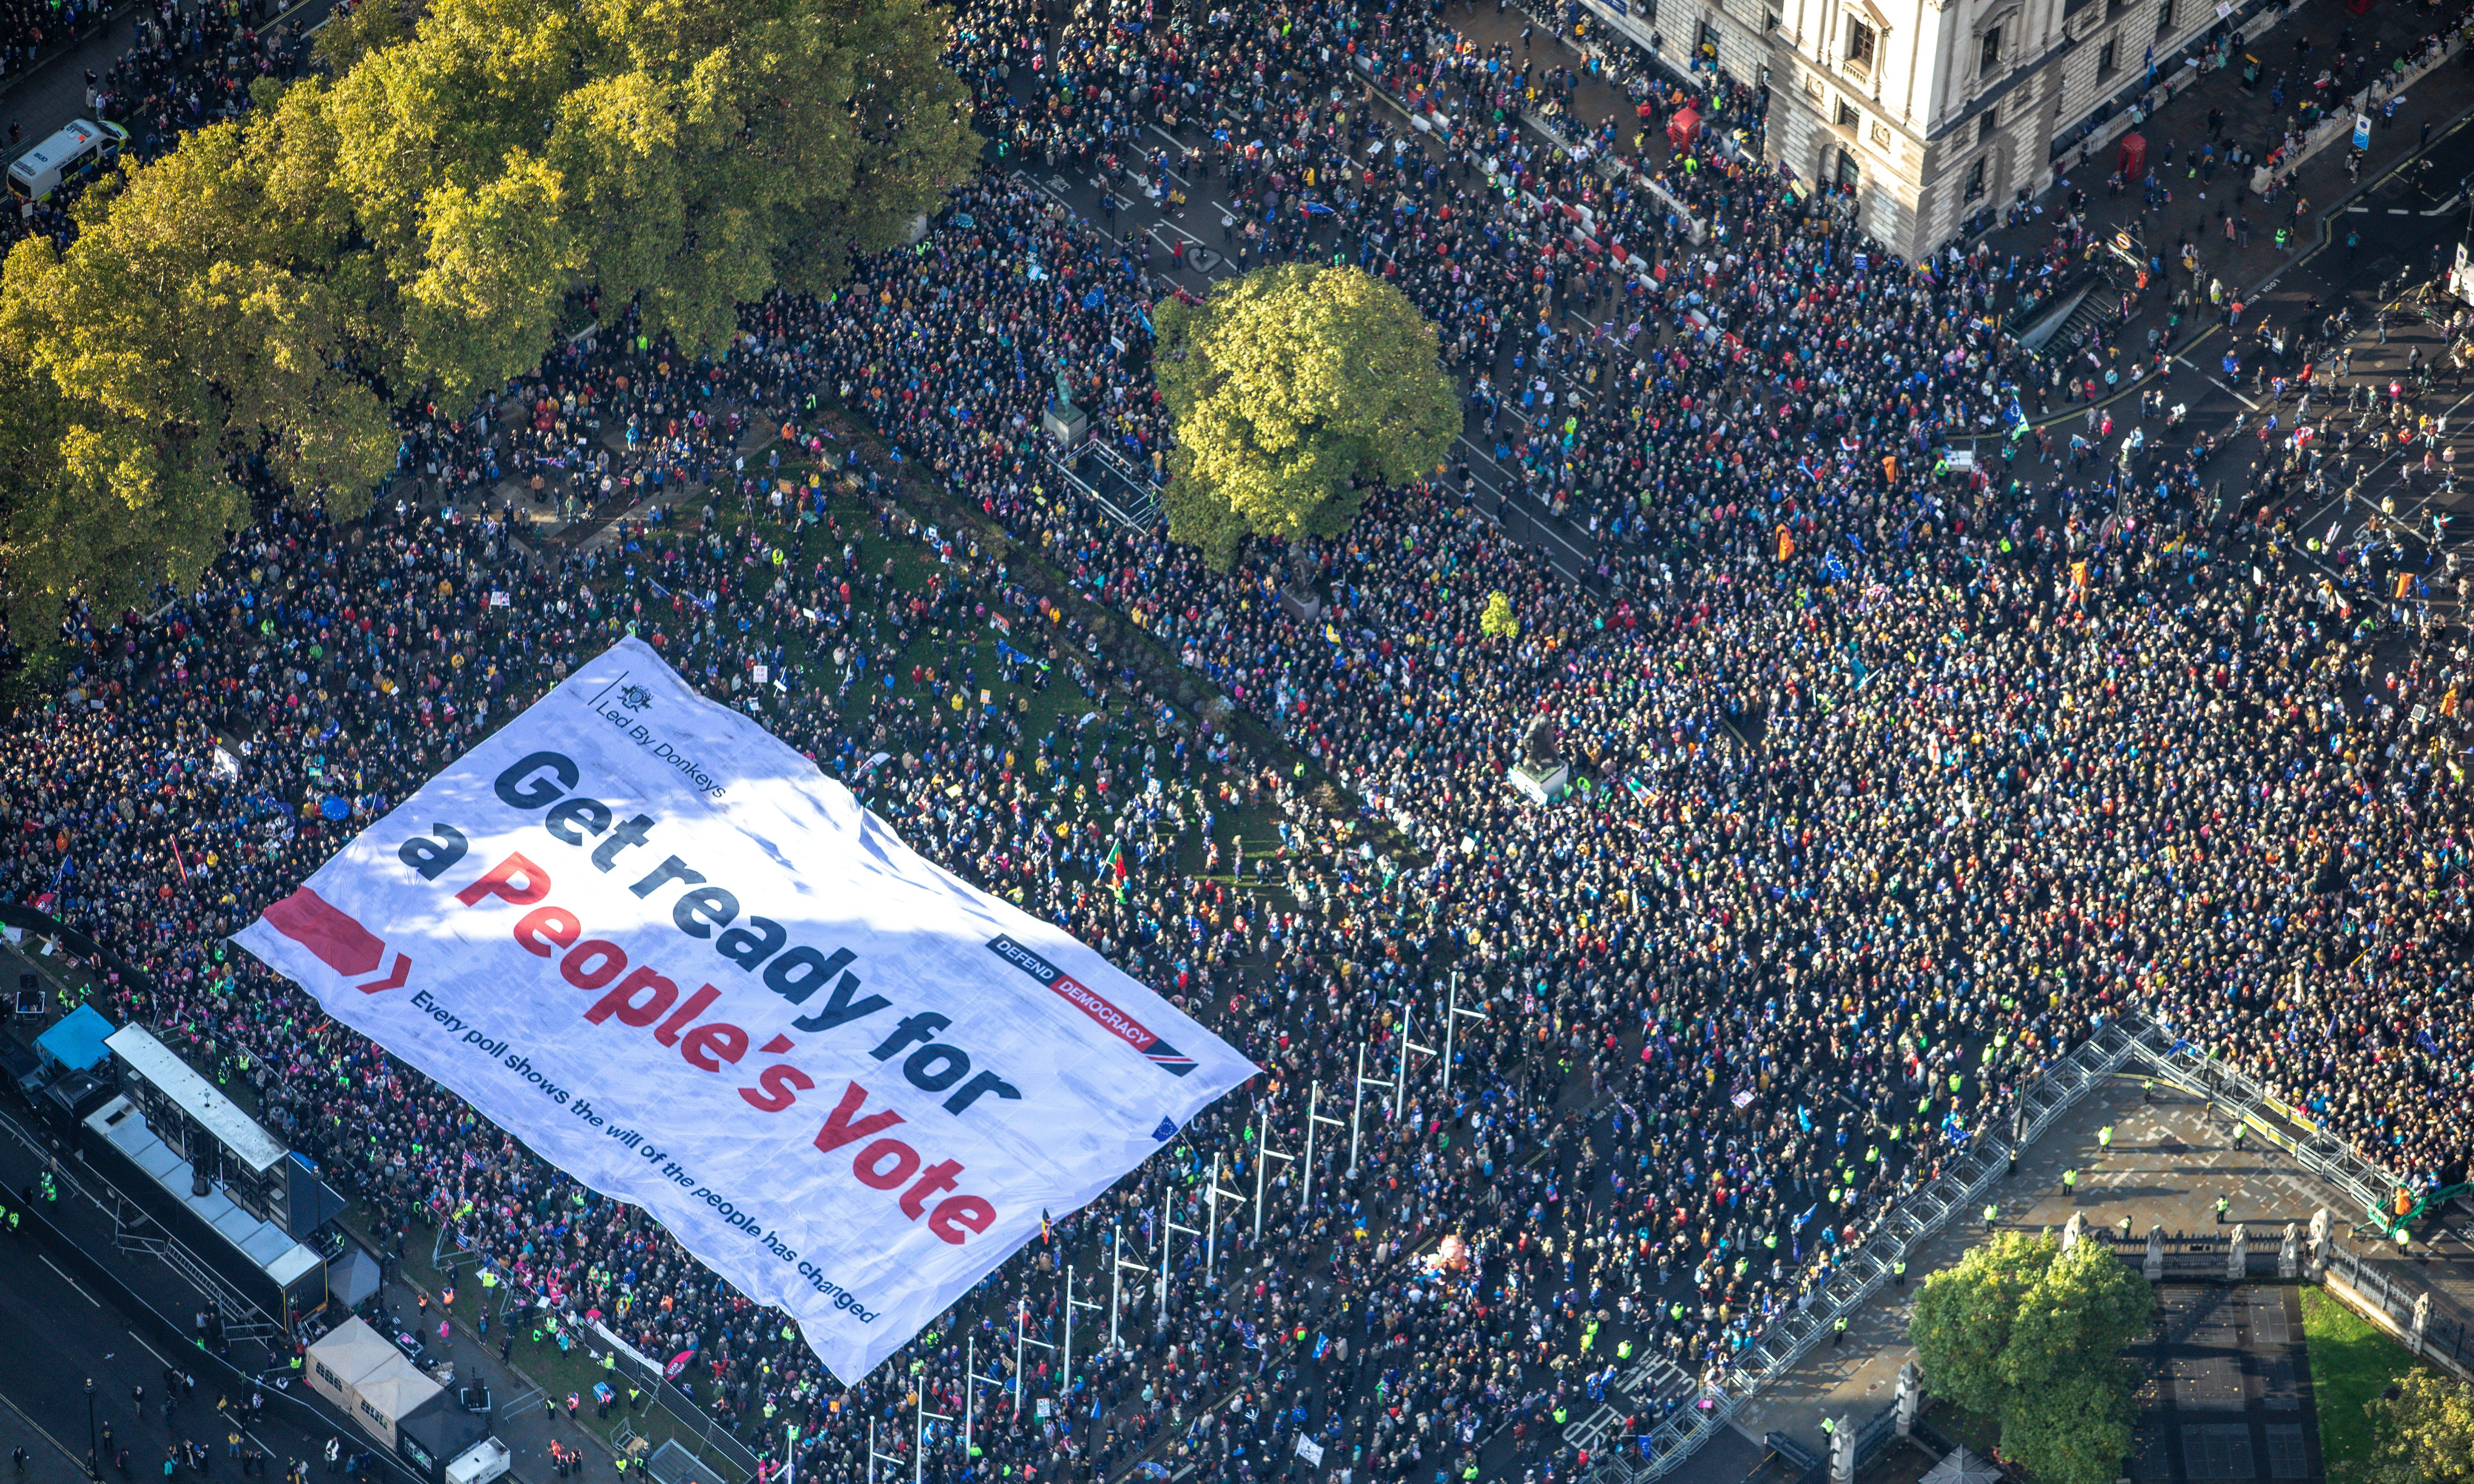 March organisers hail 'one of the greatest protest marches in British history'